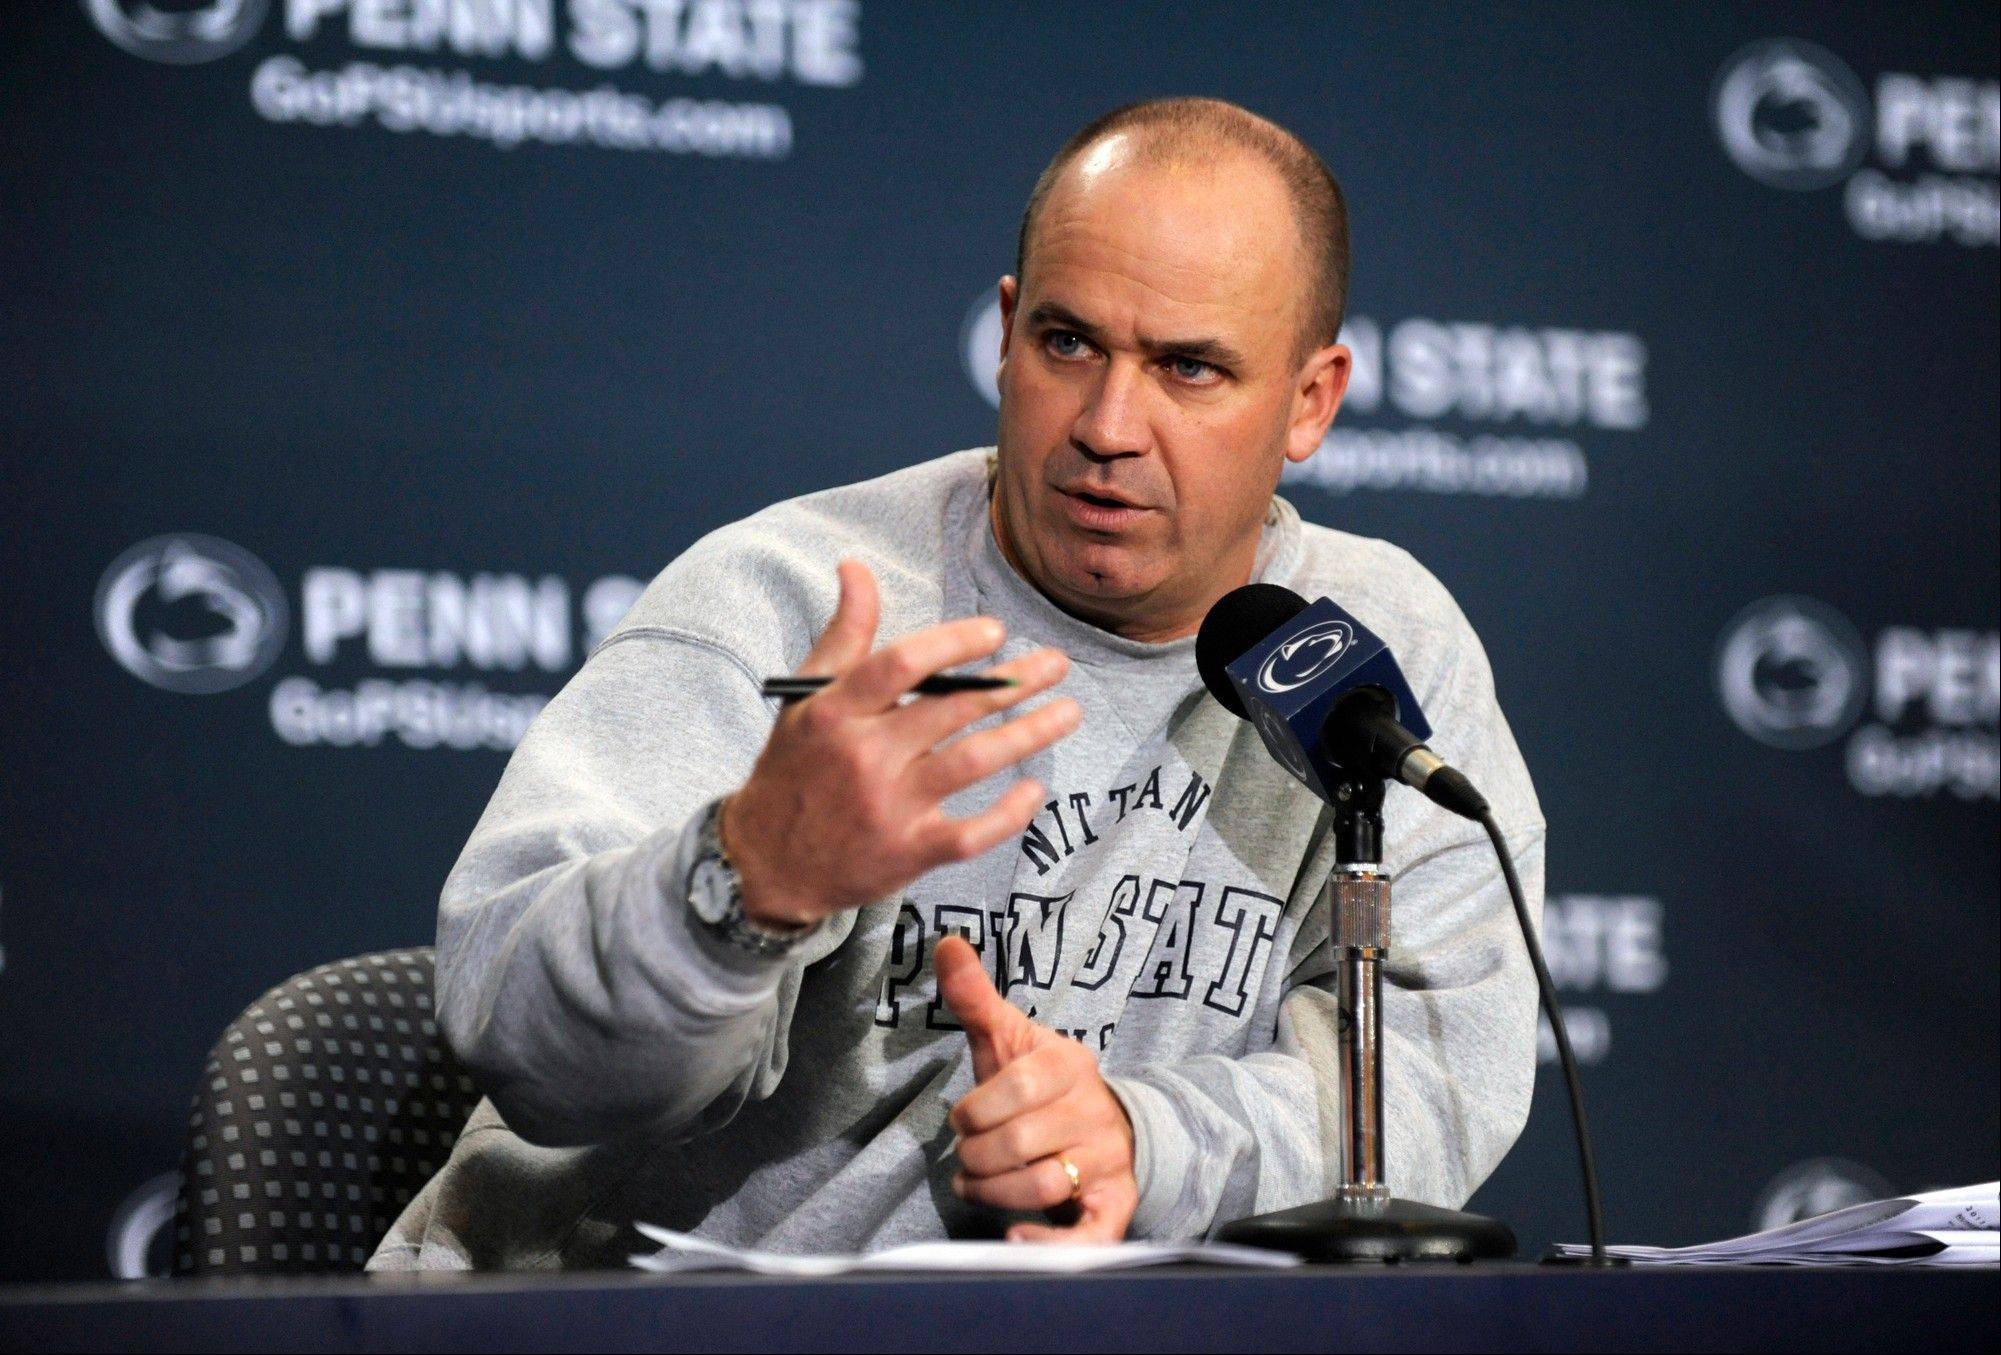 Penn State coach Bill O'Brien speaks at his weekly news conference Tuesday in State College, Pa. Penn State plays Michigan on Saturday at home